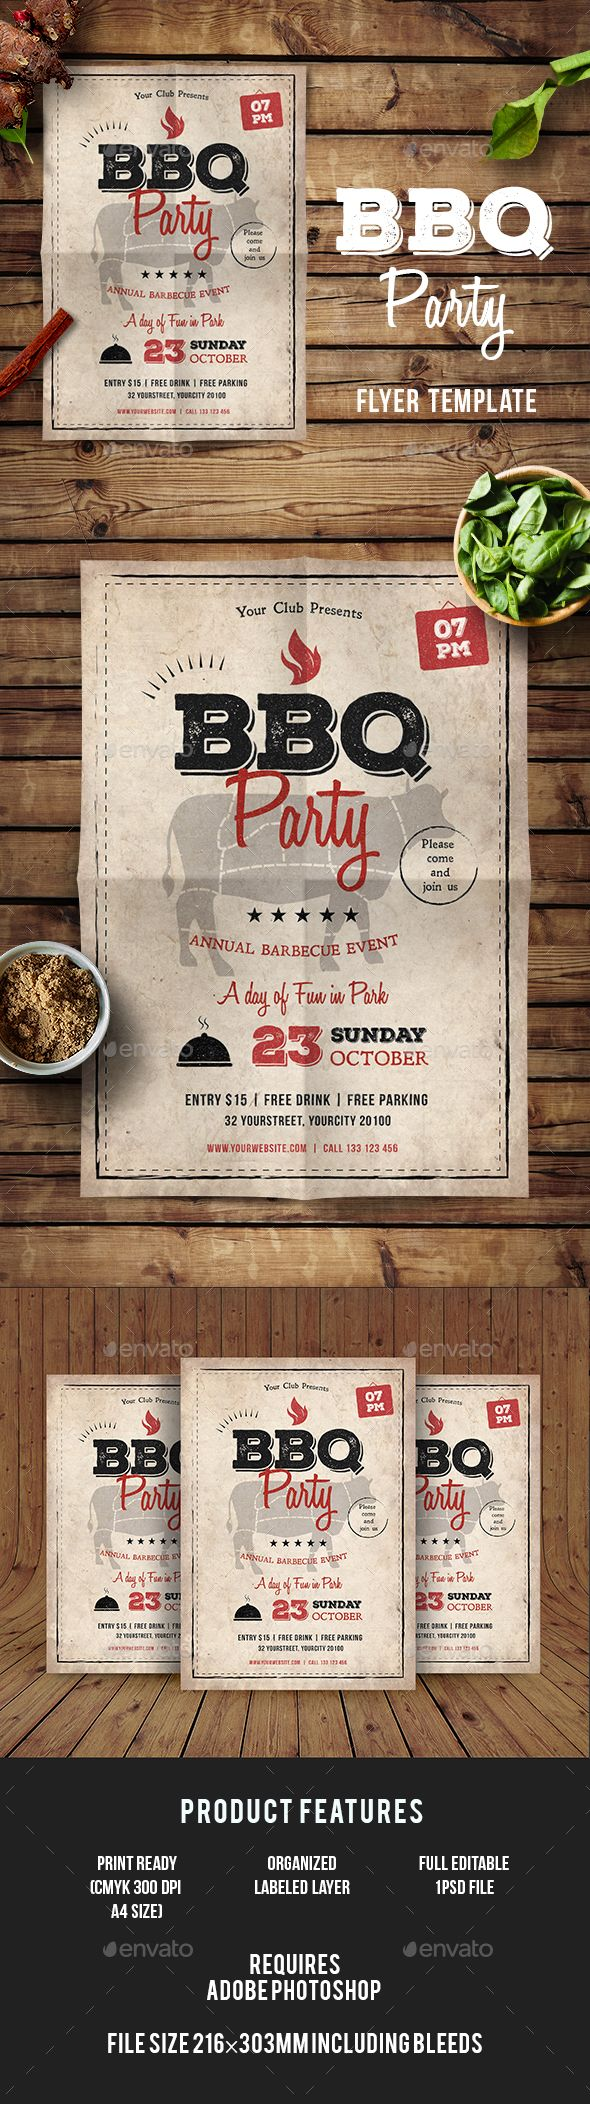 57 best bbq images on pinterest flyer template flyer design and